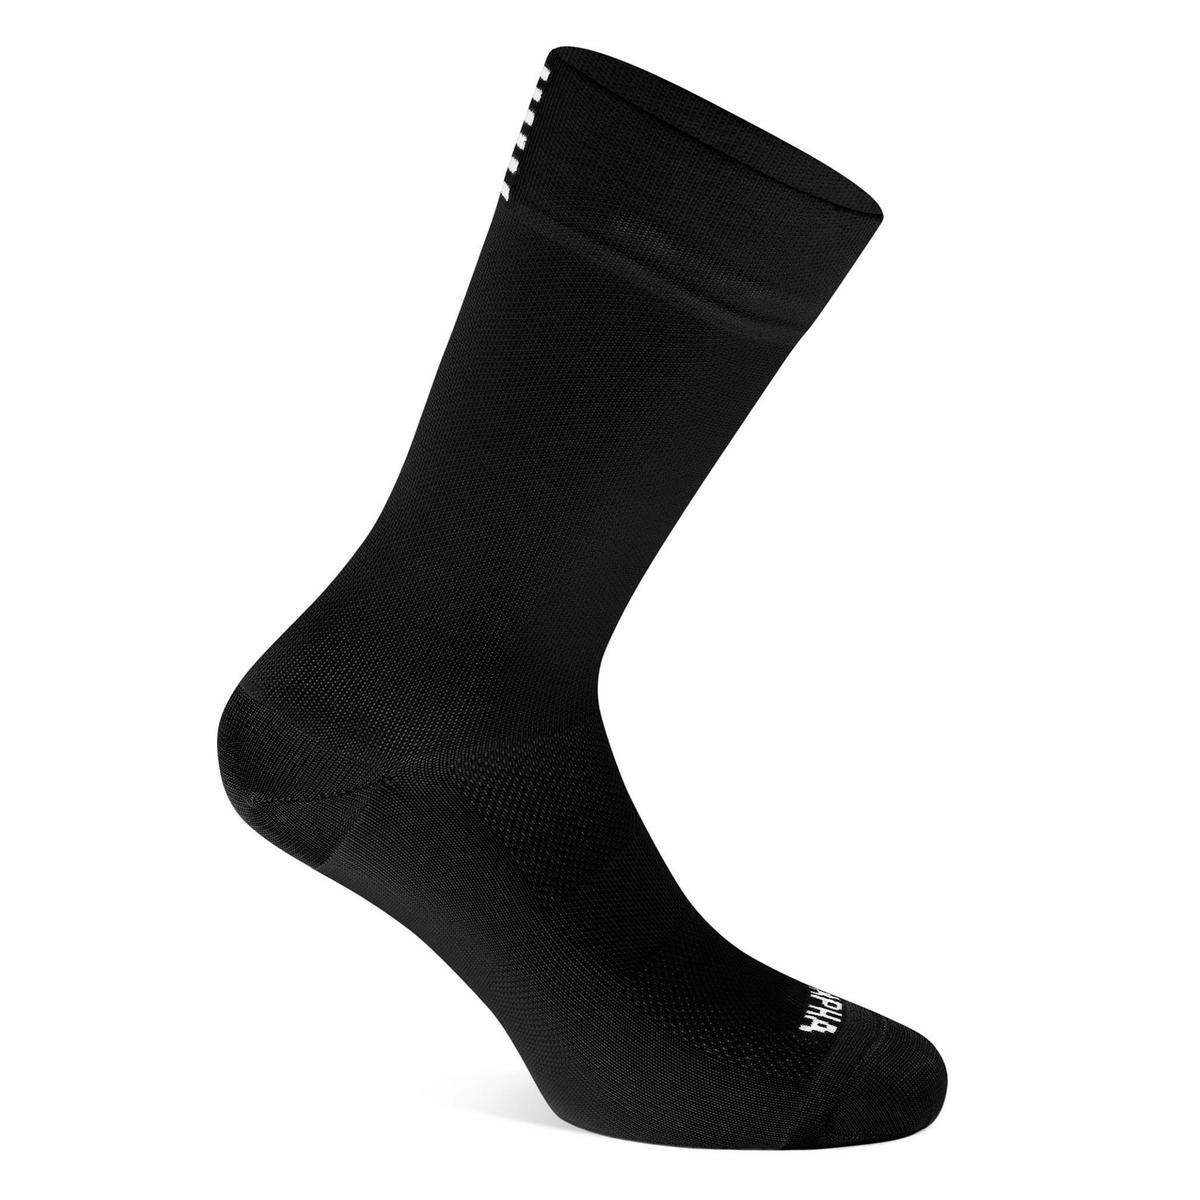 Pro Team Socks - Regular